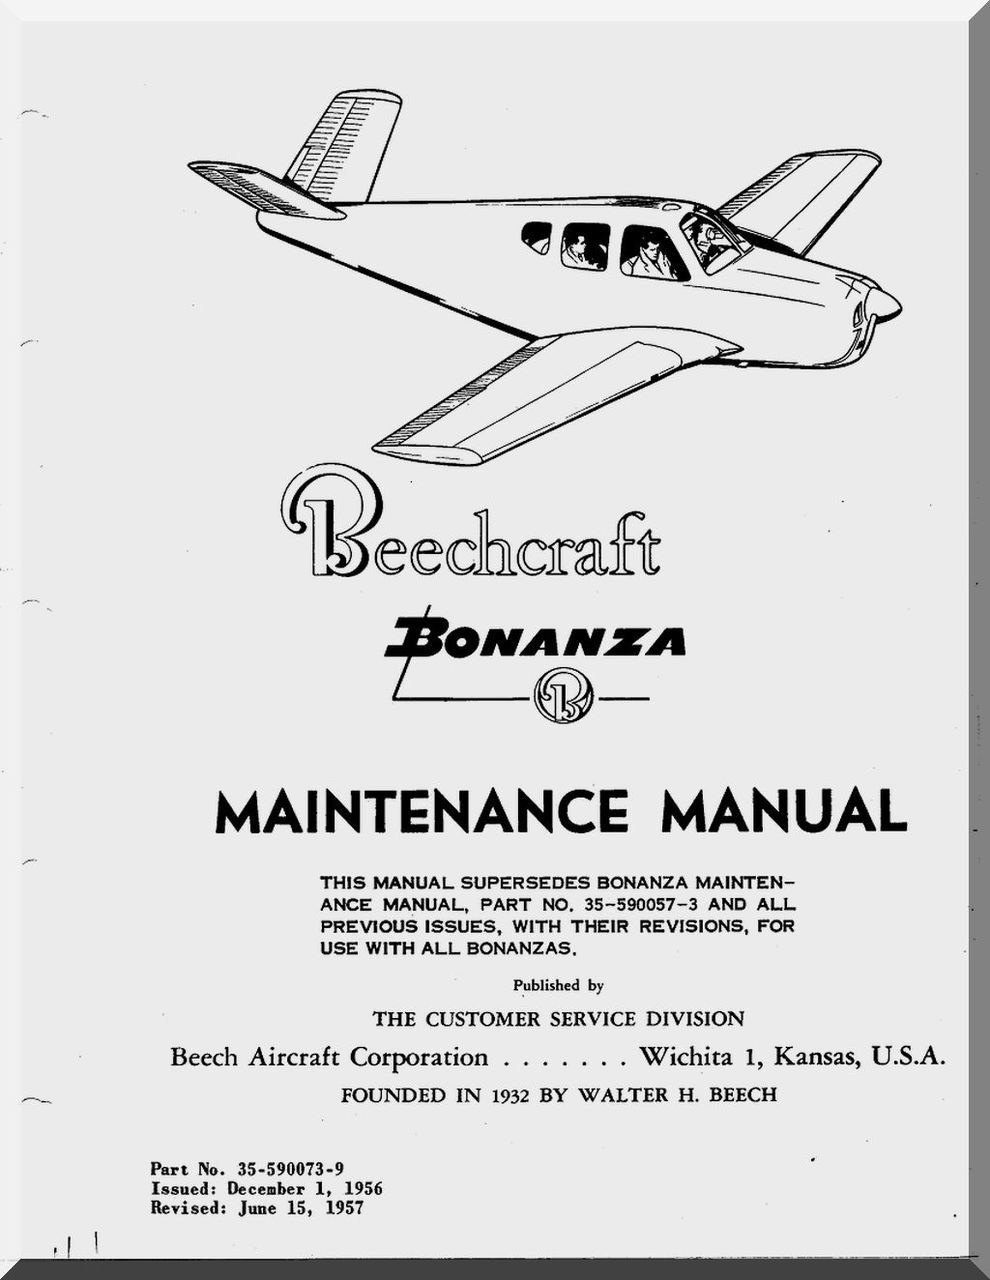 what are the different manual use in aircraft maintainance